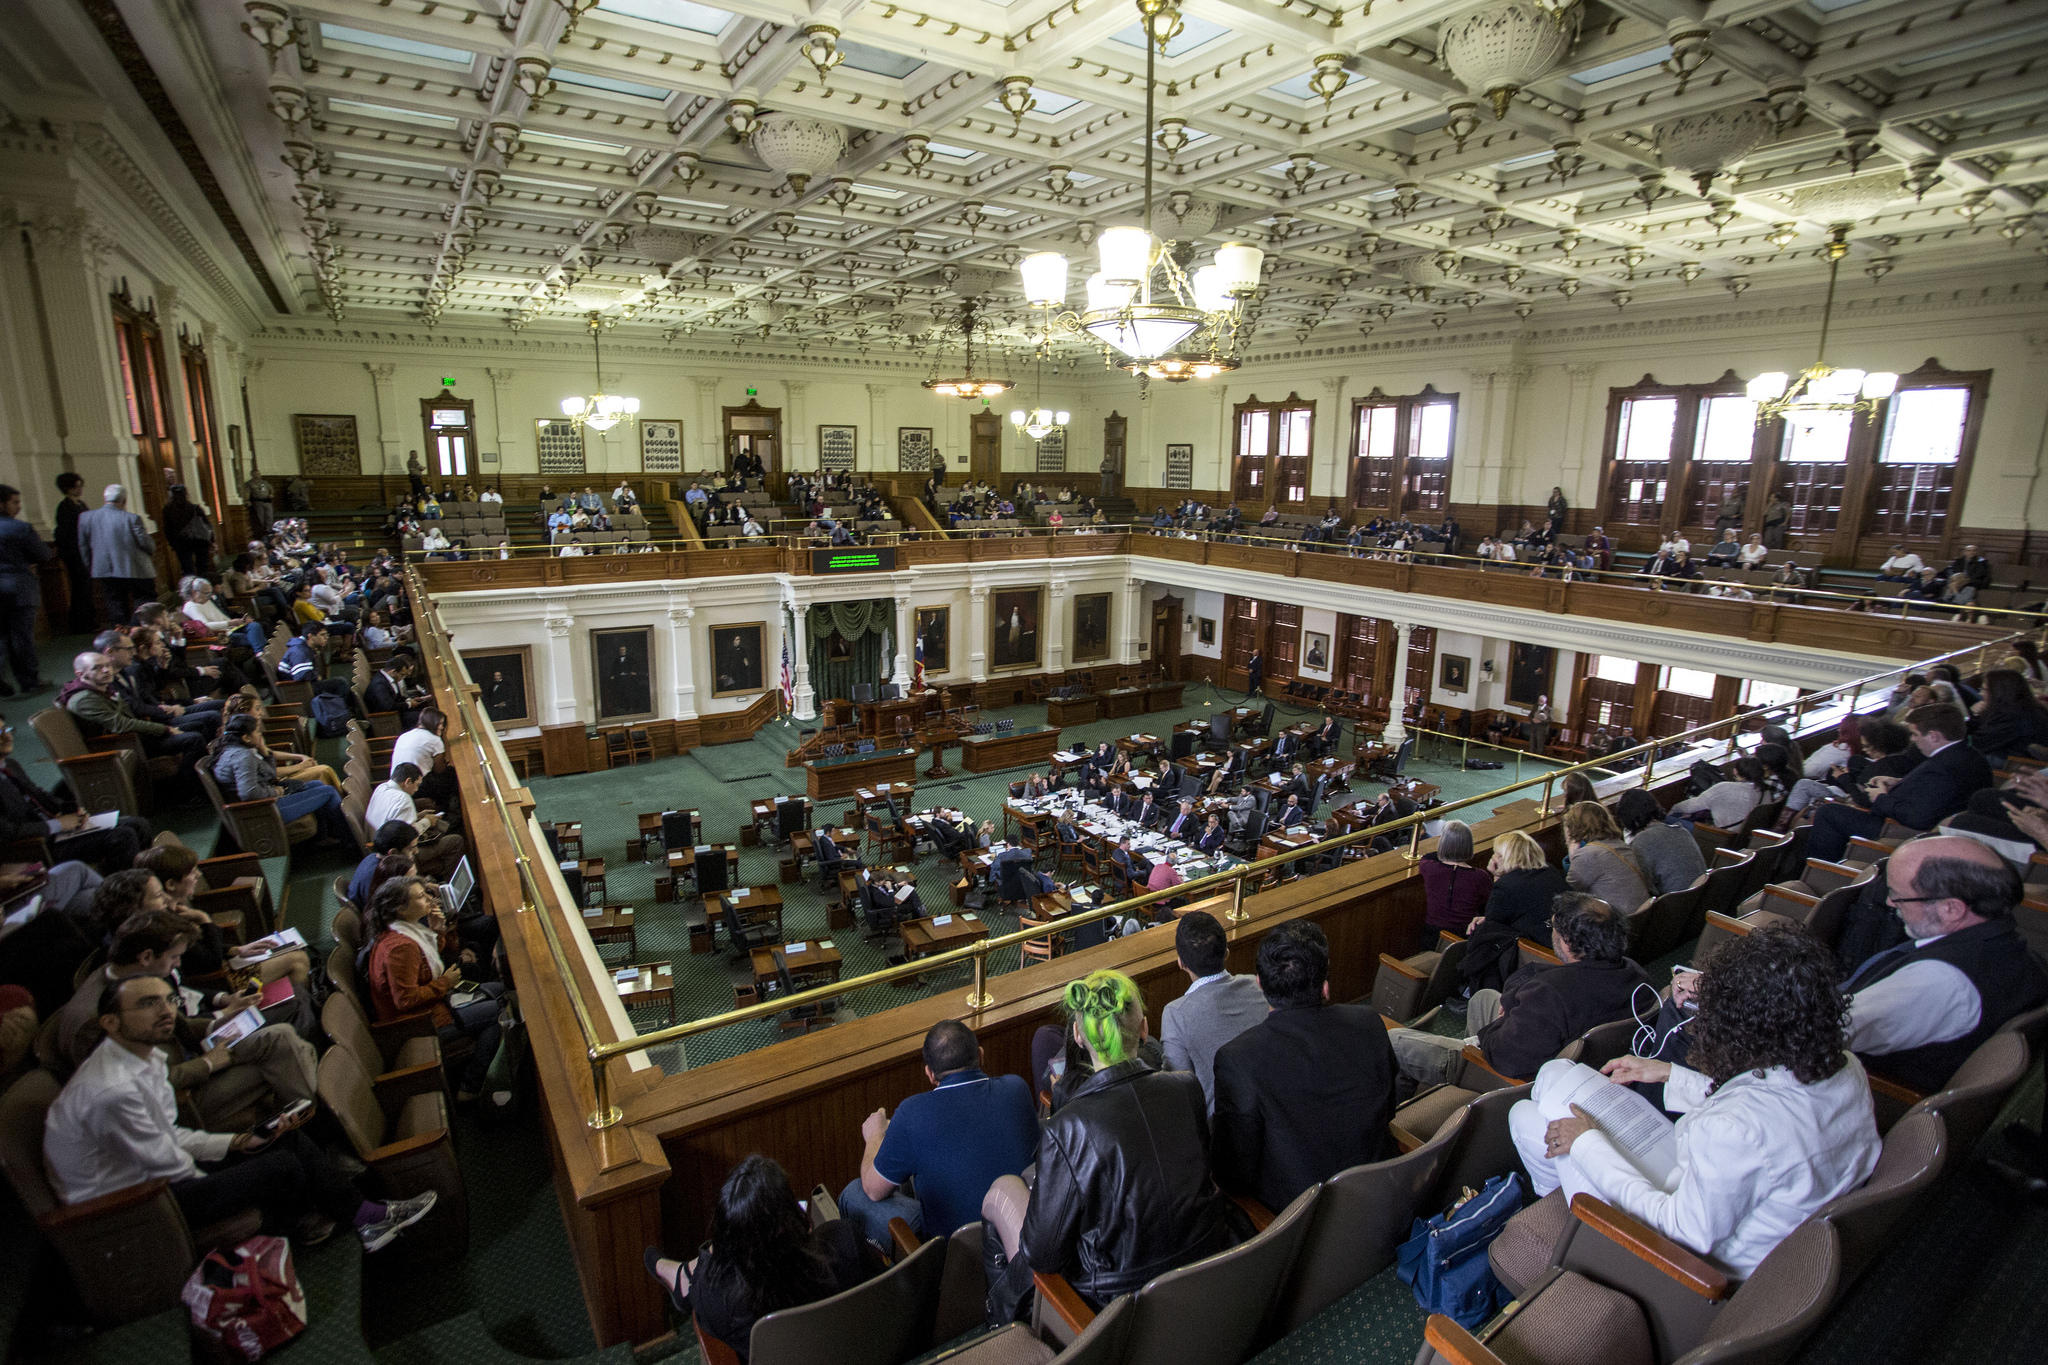 On Last Day Of Session, Tensions Rise At Texas Legislature